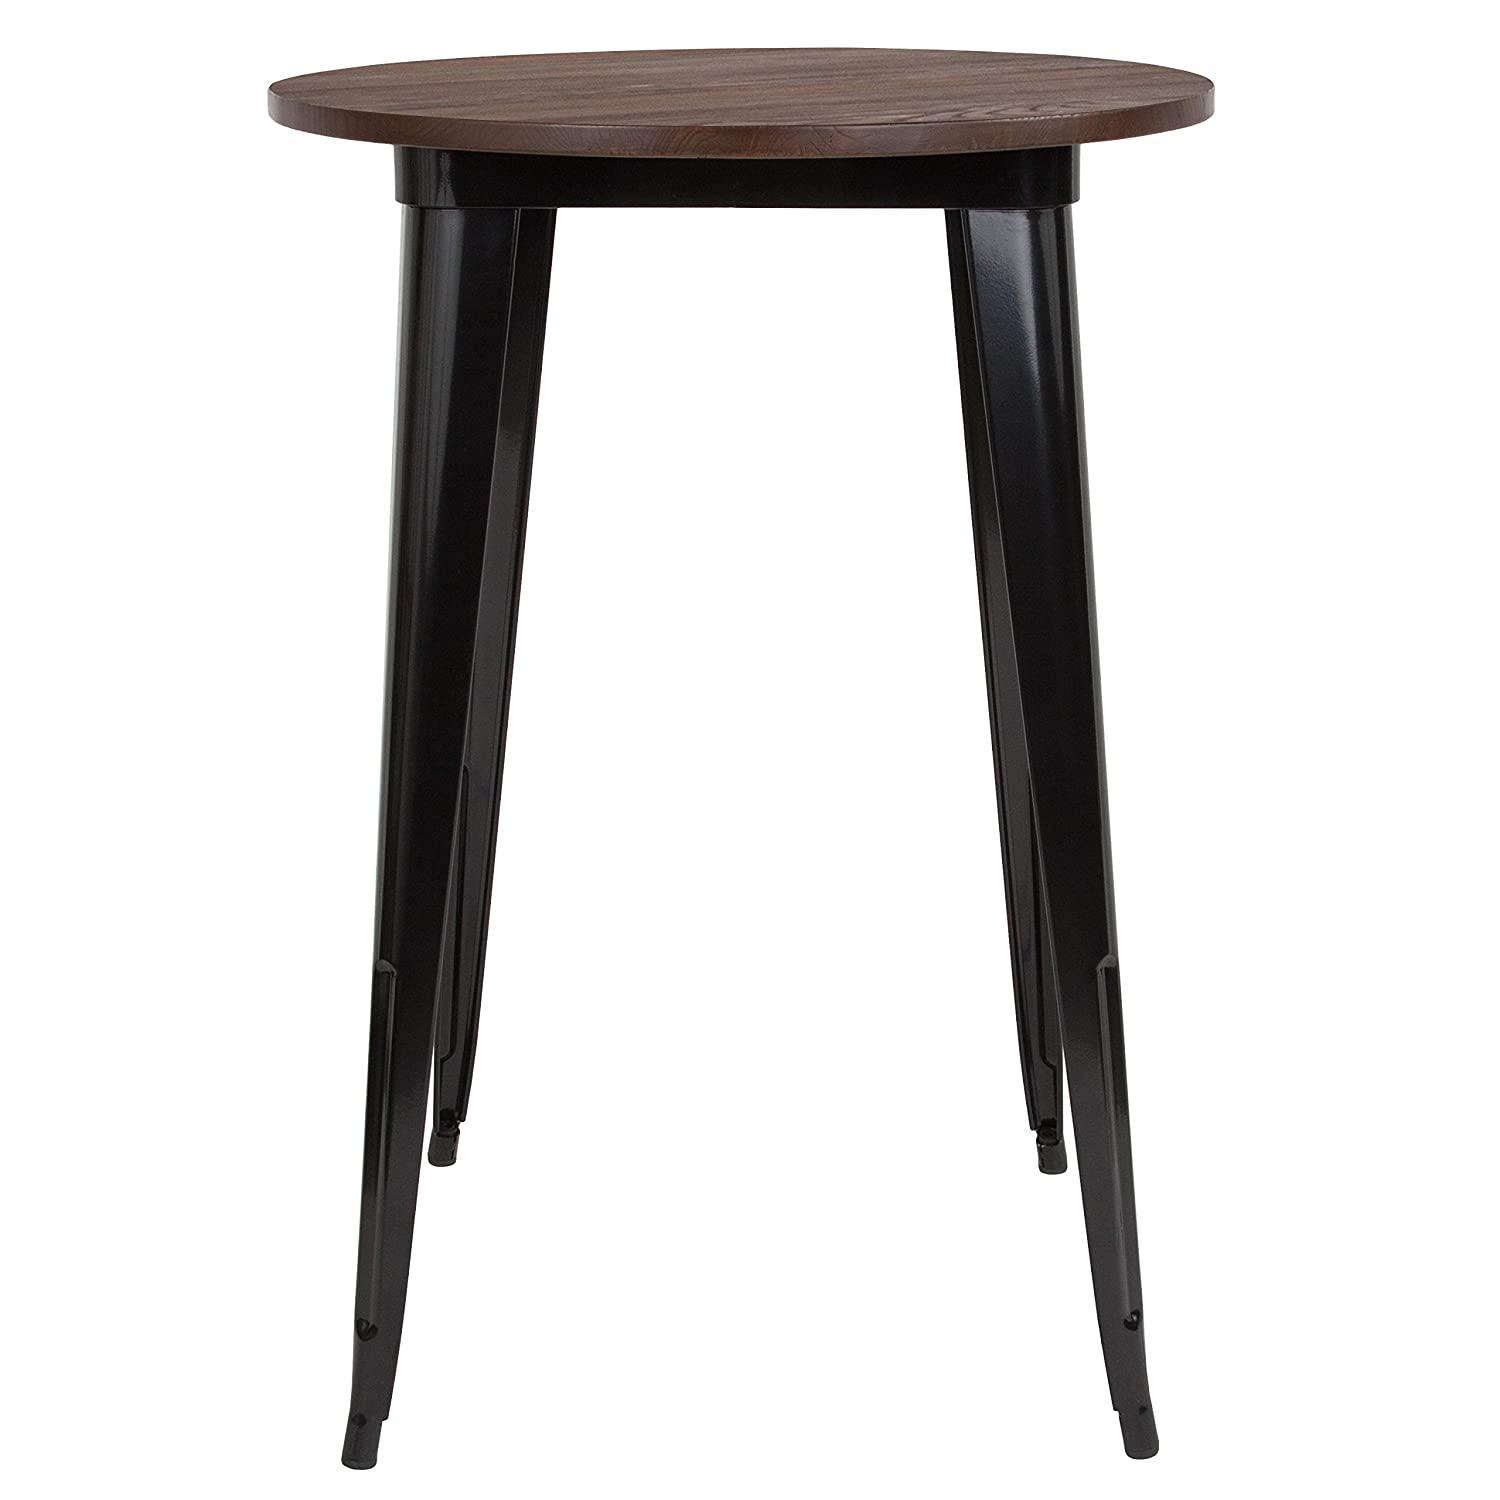 Super Taylor Logan 30 Inch Round Metal Indoor Bar Height Table With Walnut Rustic Wood Top Black Theyellowbook Wood Chair Design Ideas Theyellowbookinfo